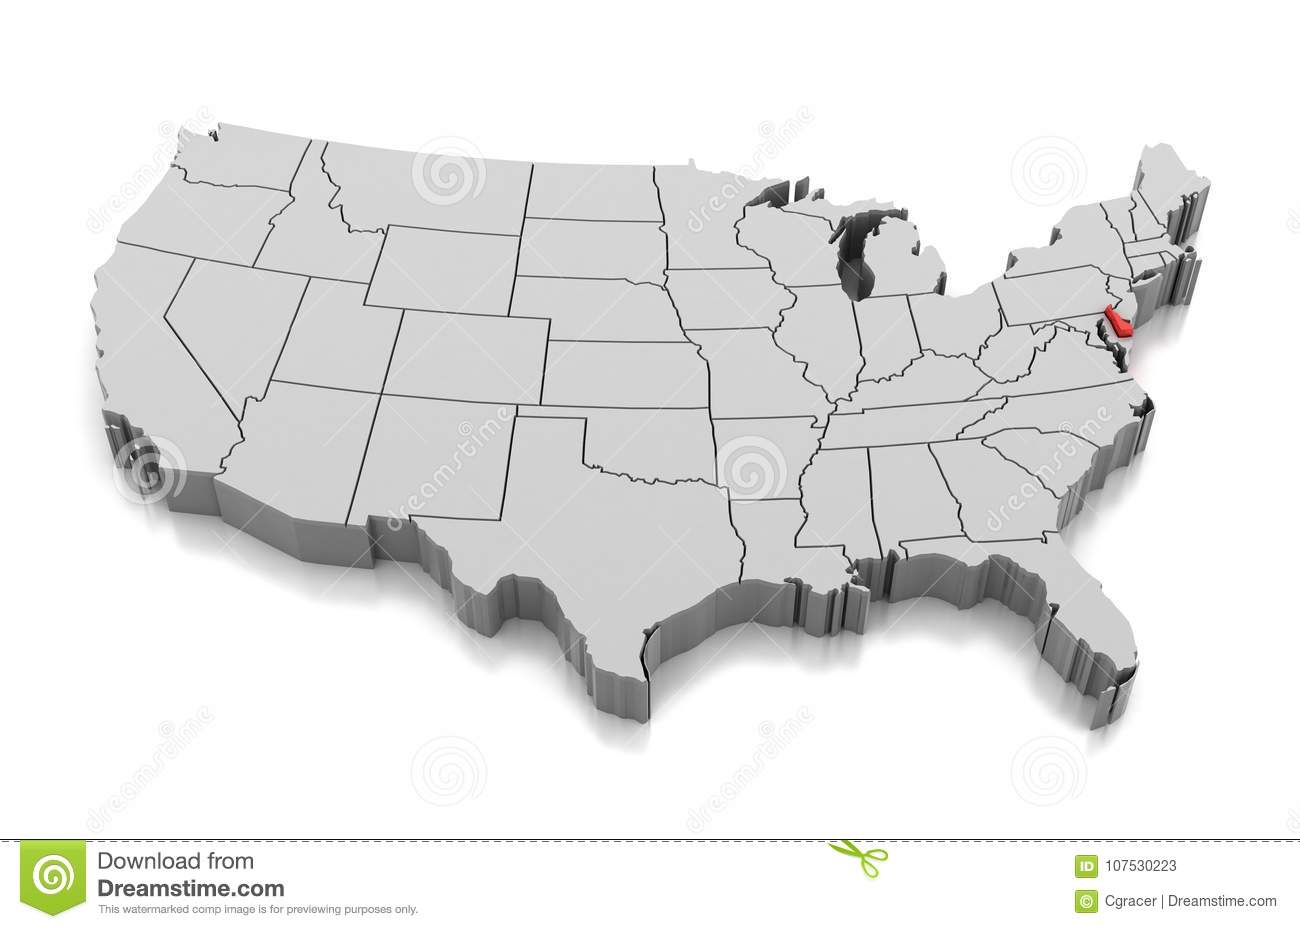 Map of Delaware state, USA stock illustration. Illustration of shape Delaware On Usa Map on